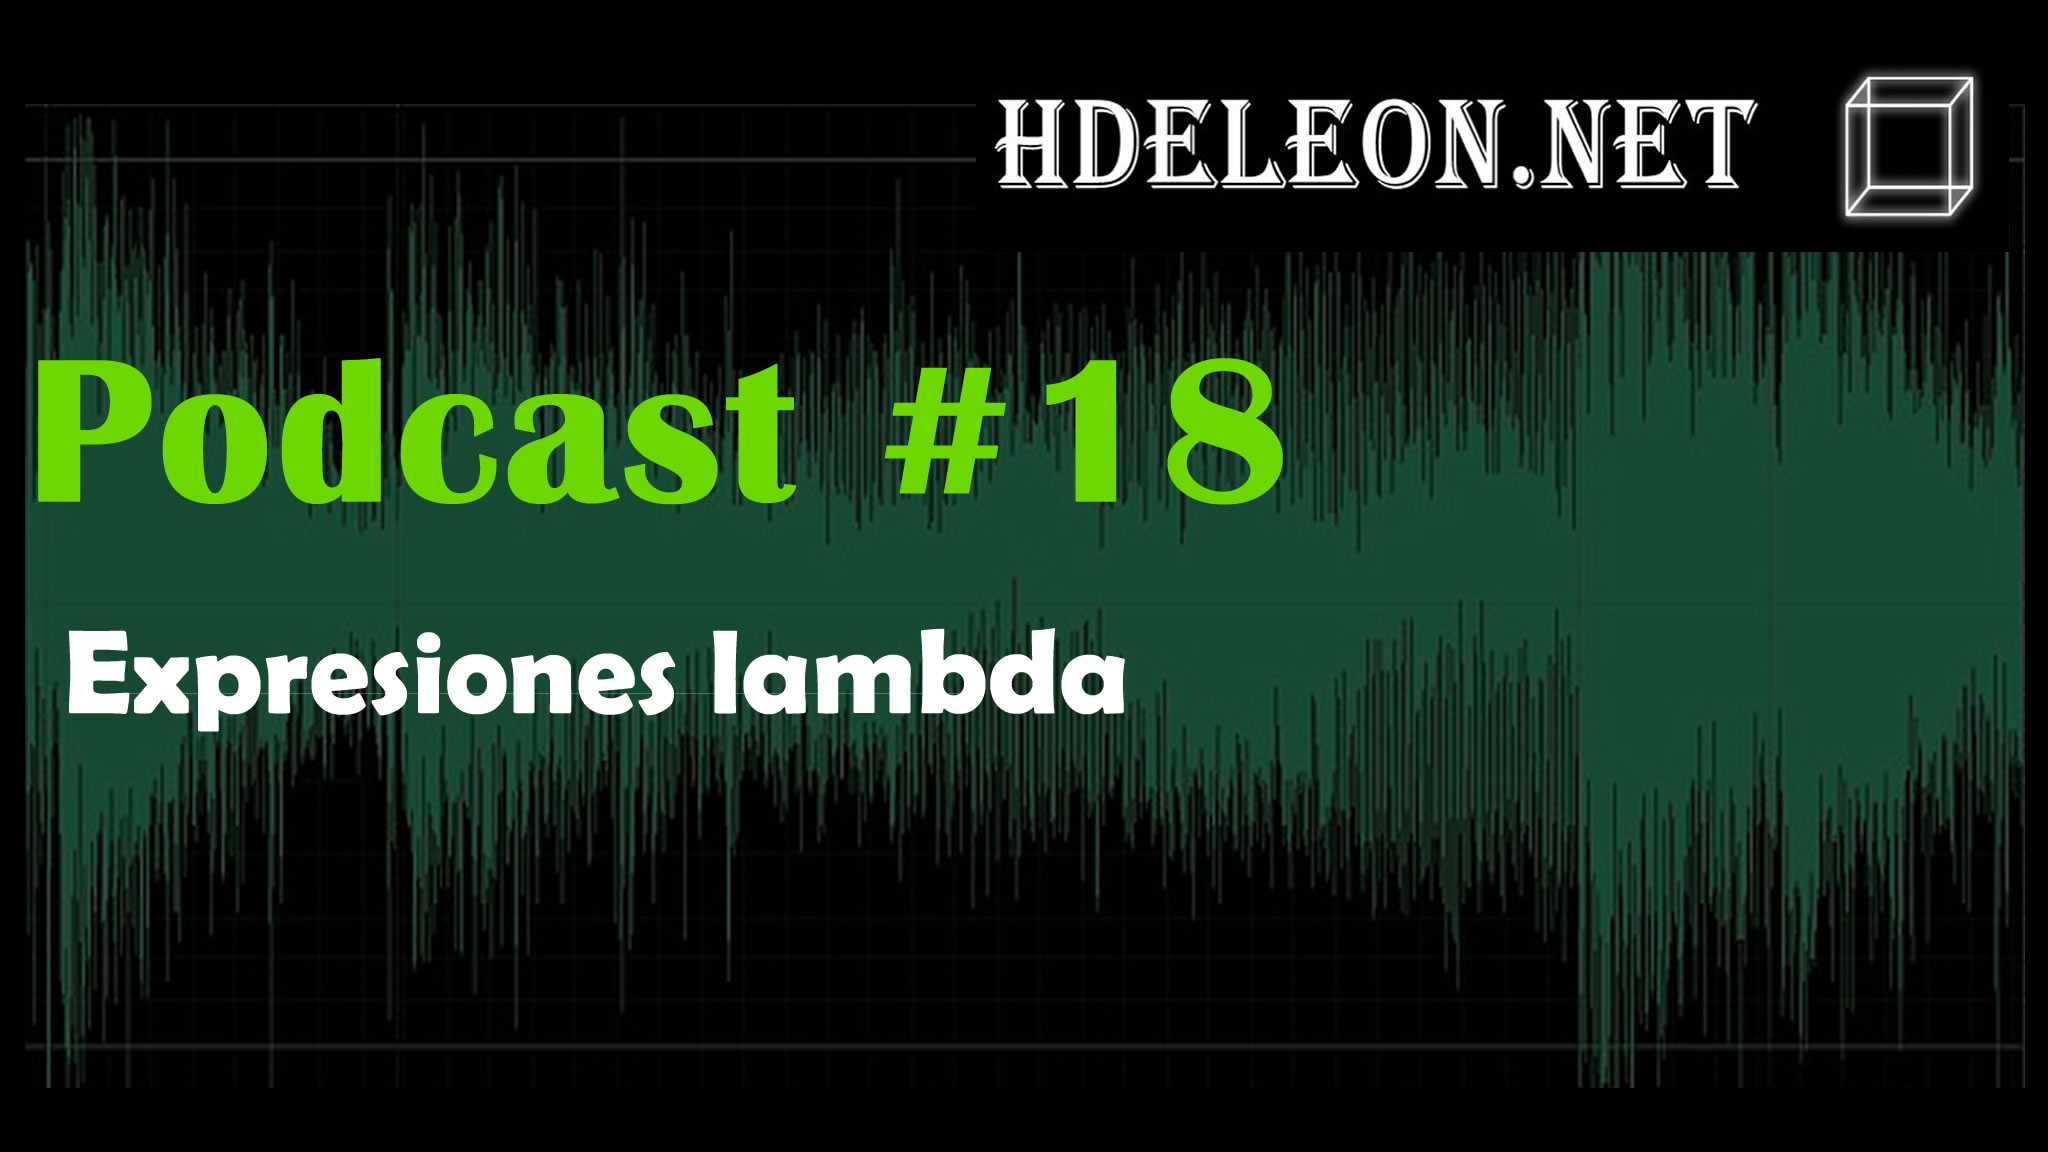 Podcast #18 – Expresiones lambda